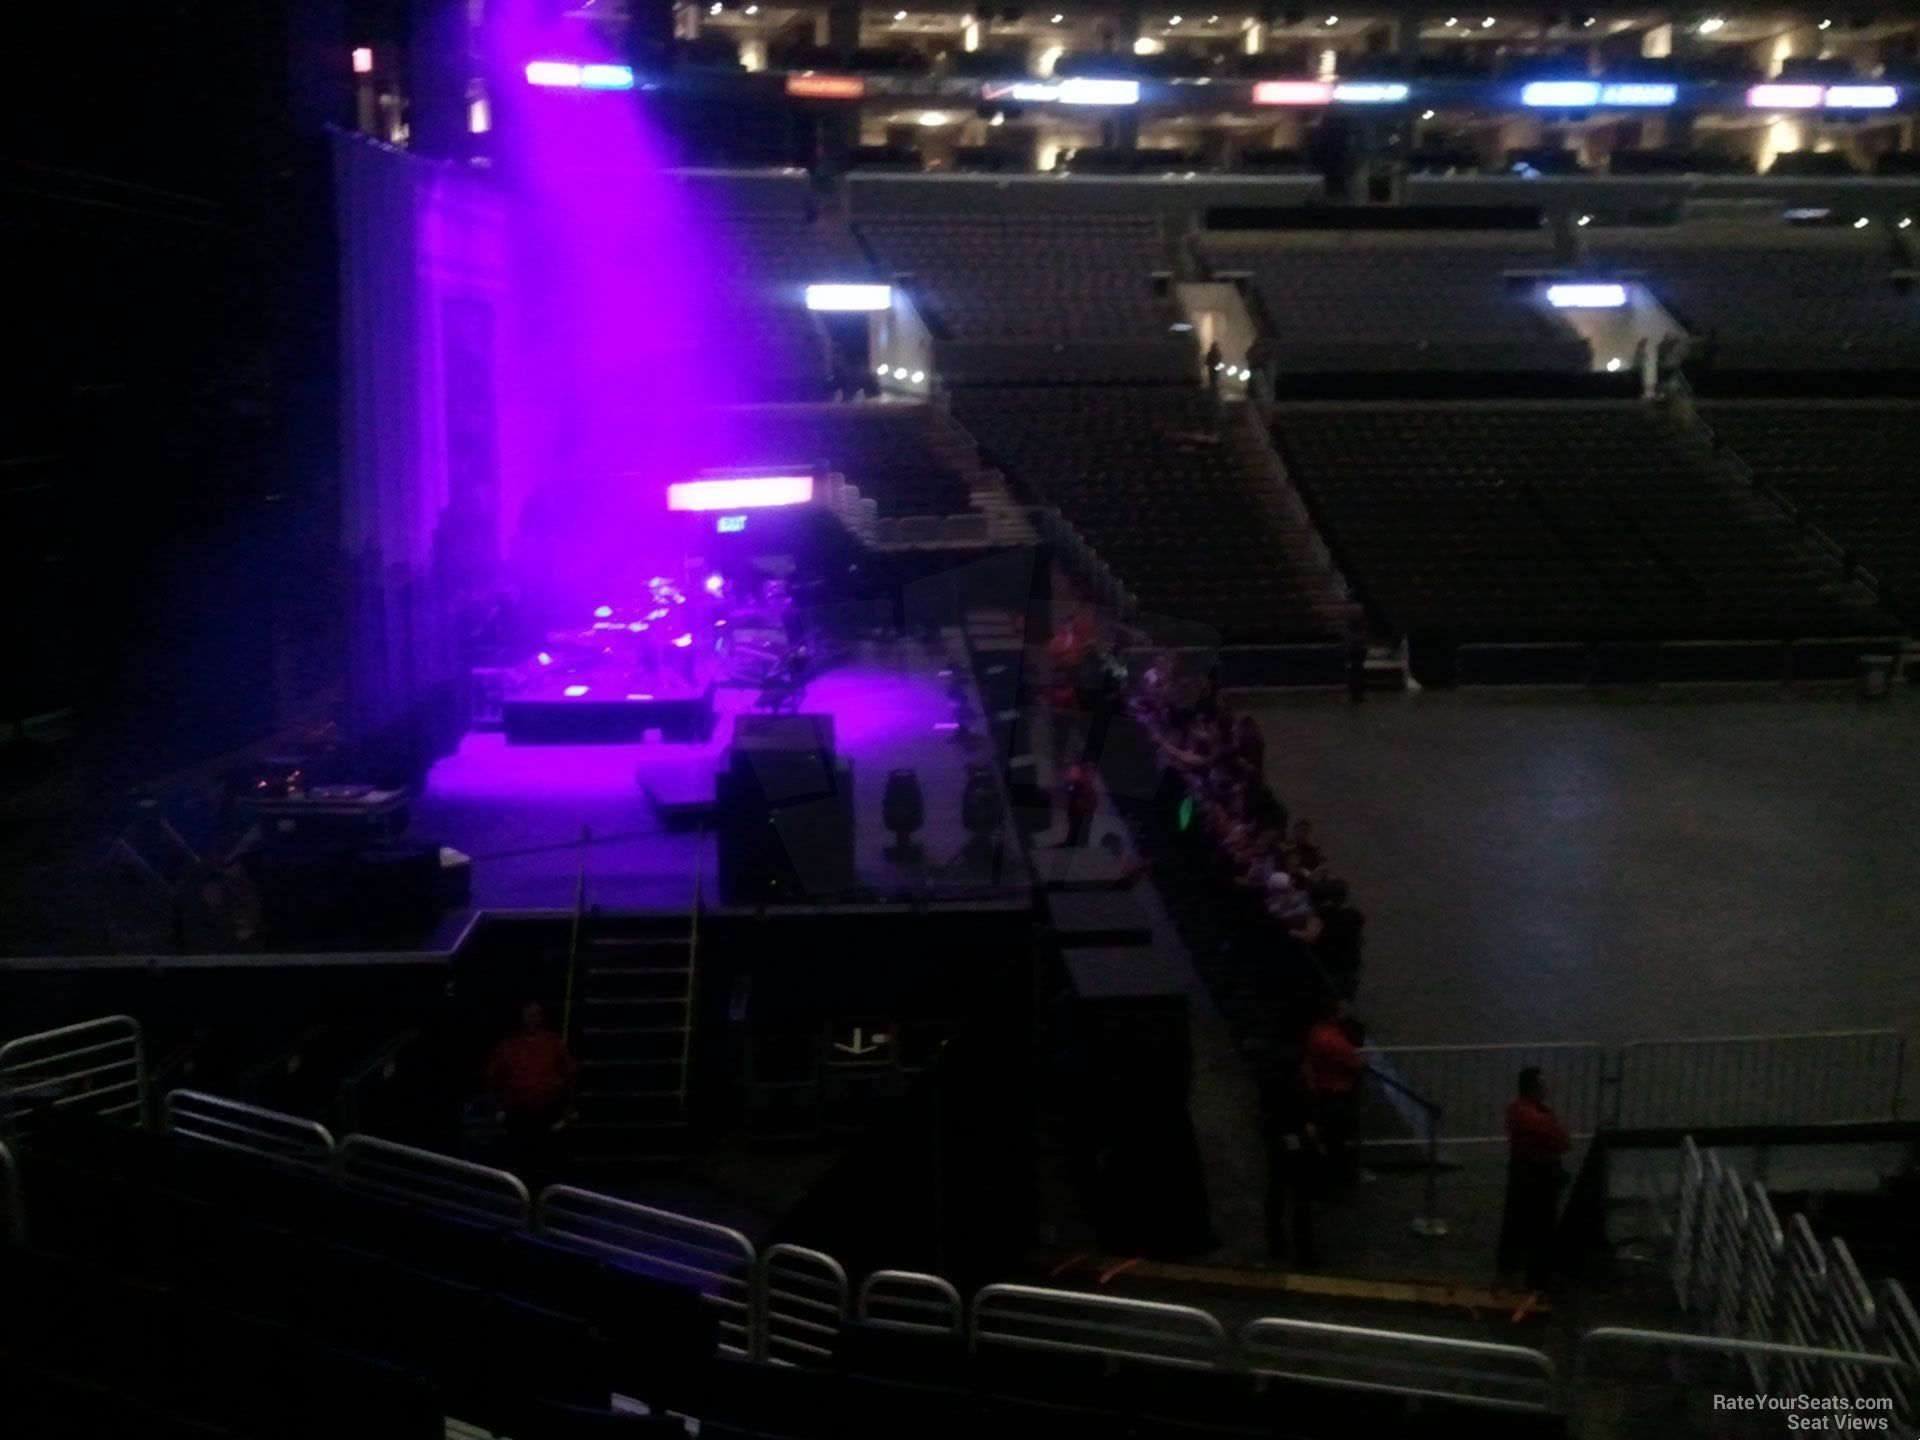 View From Section 114 at Staples Center for a Concert